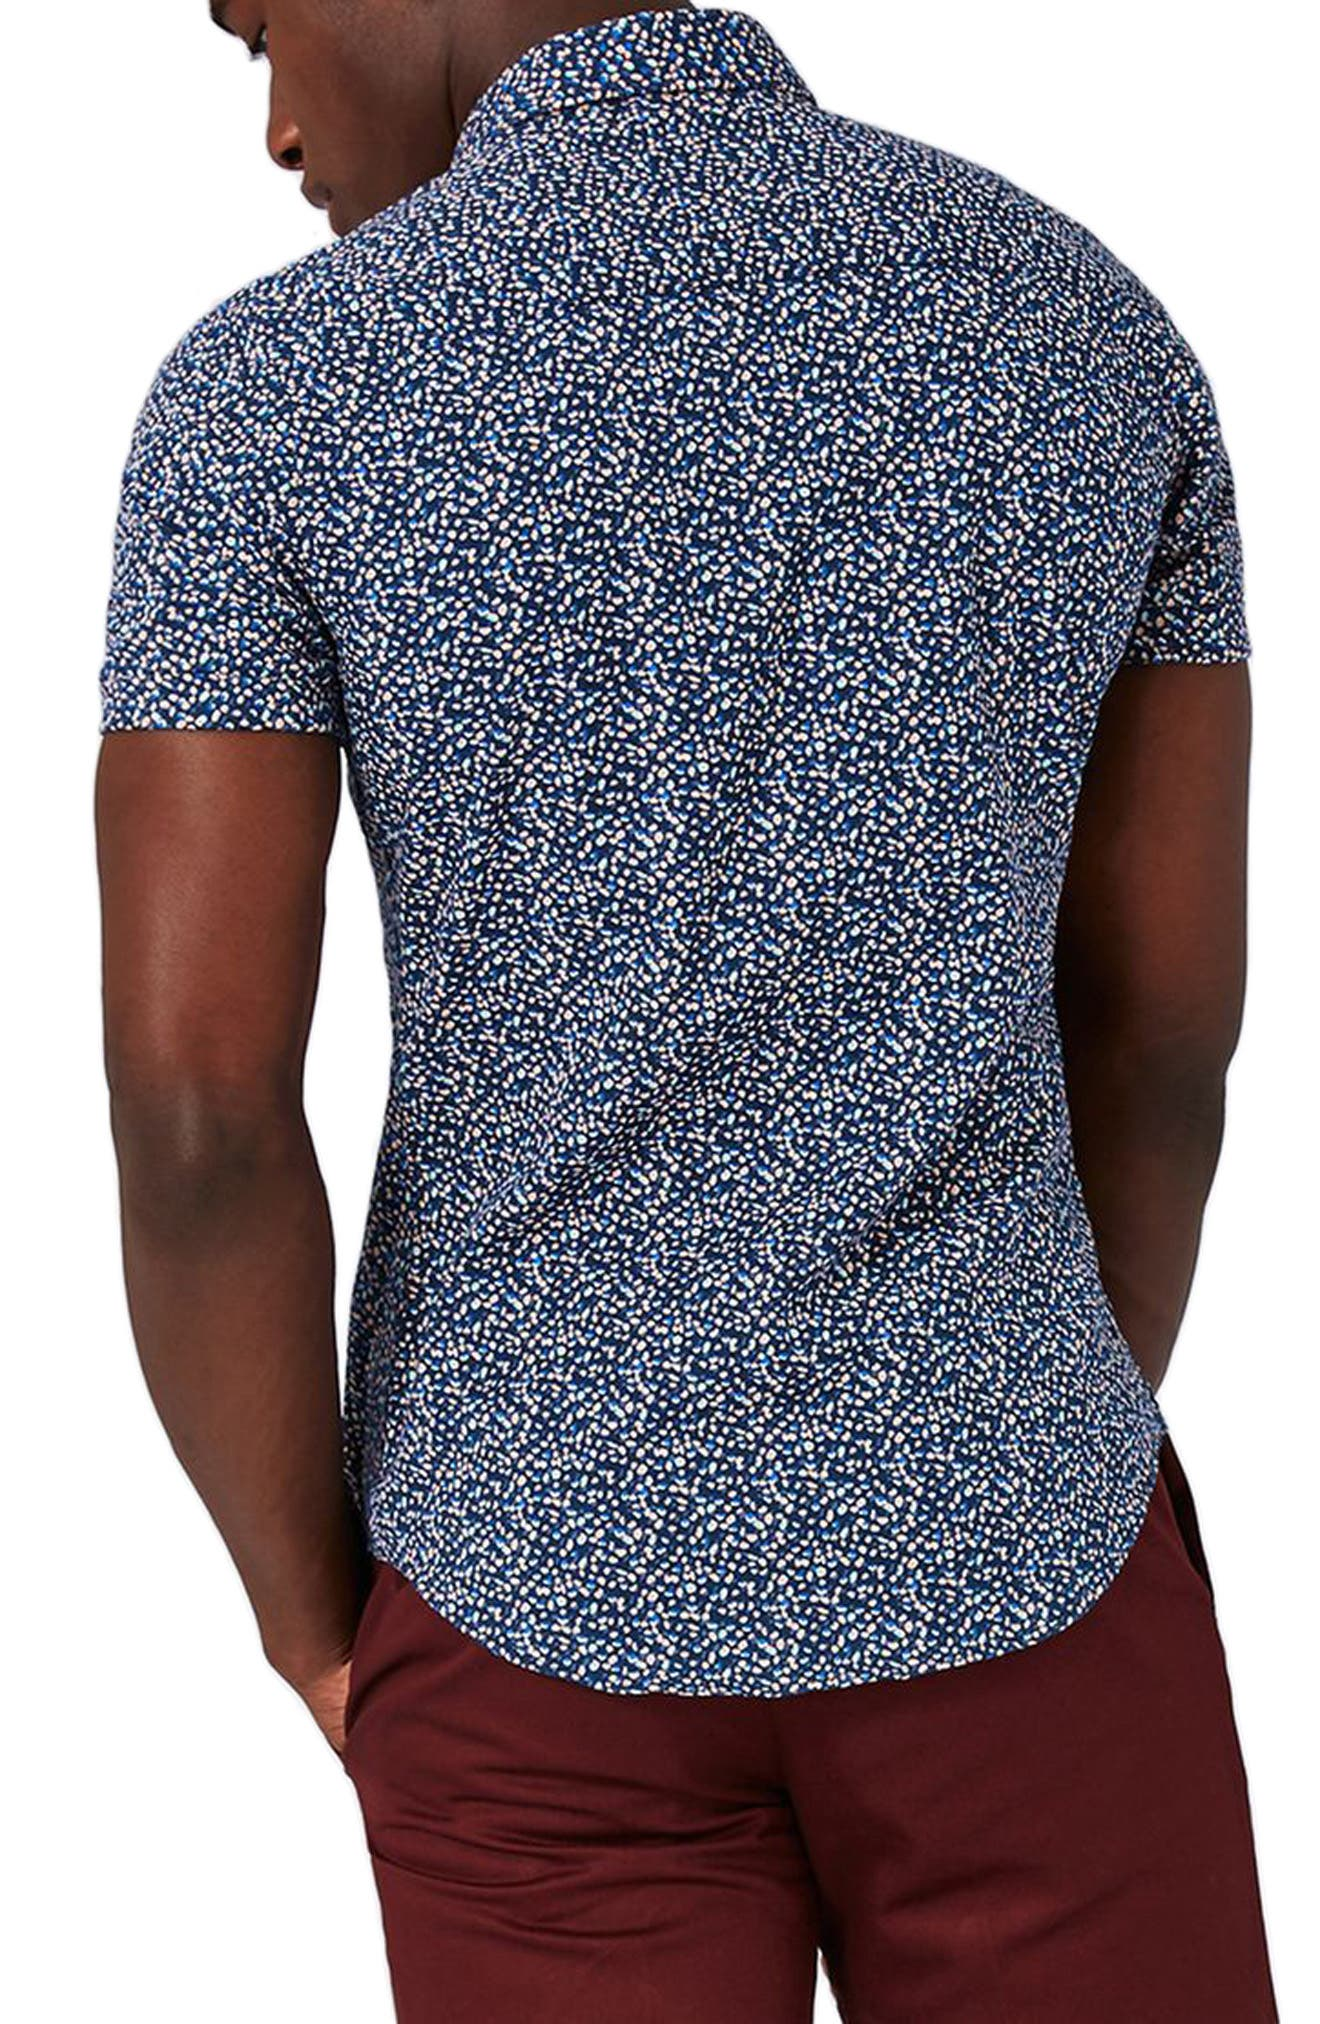 Blotch Print Shirt,                             Alternate thumbnail 2, color,                             410